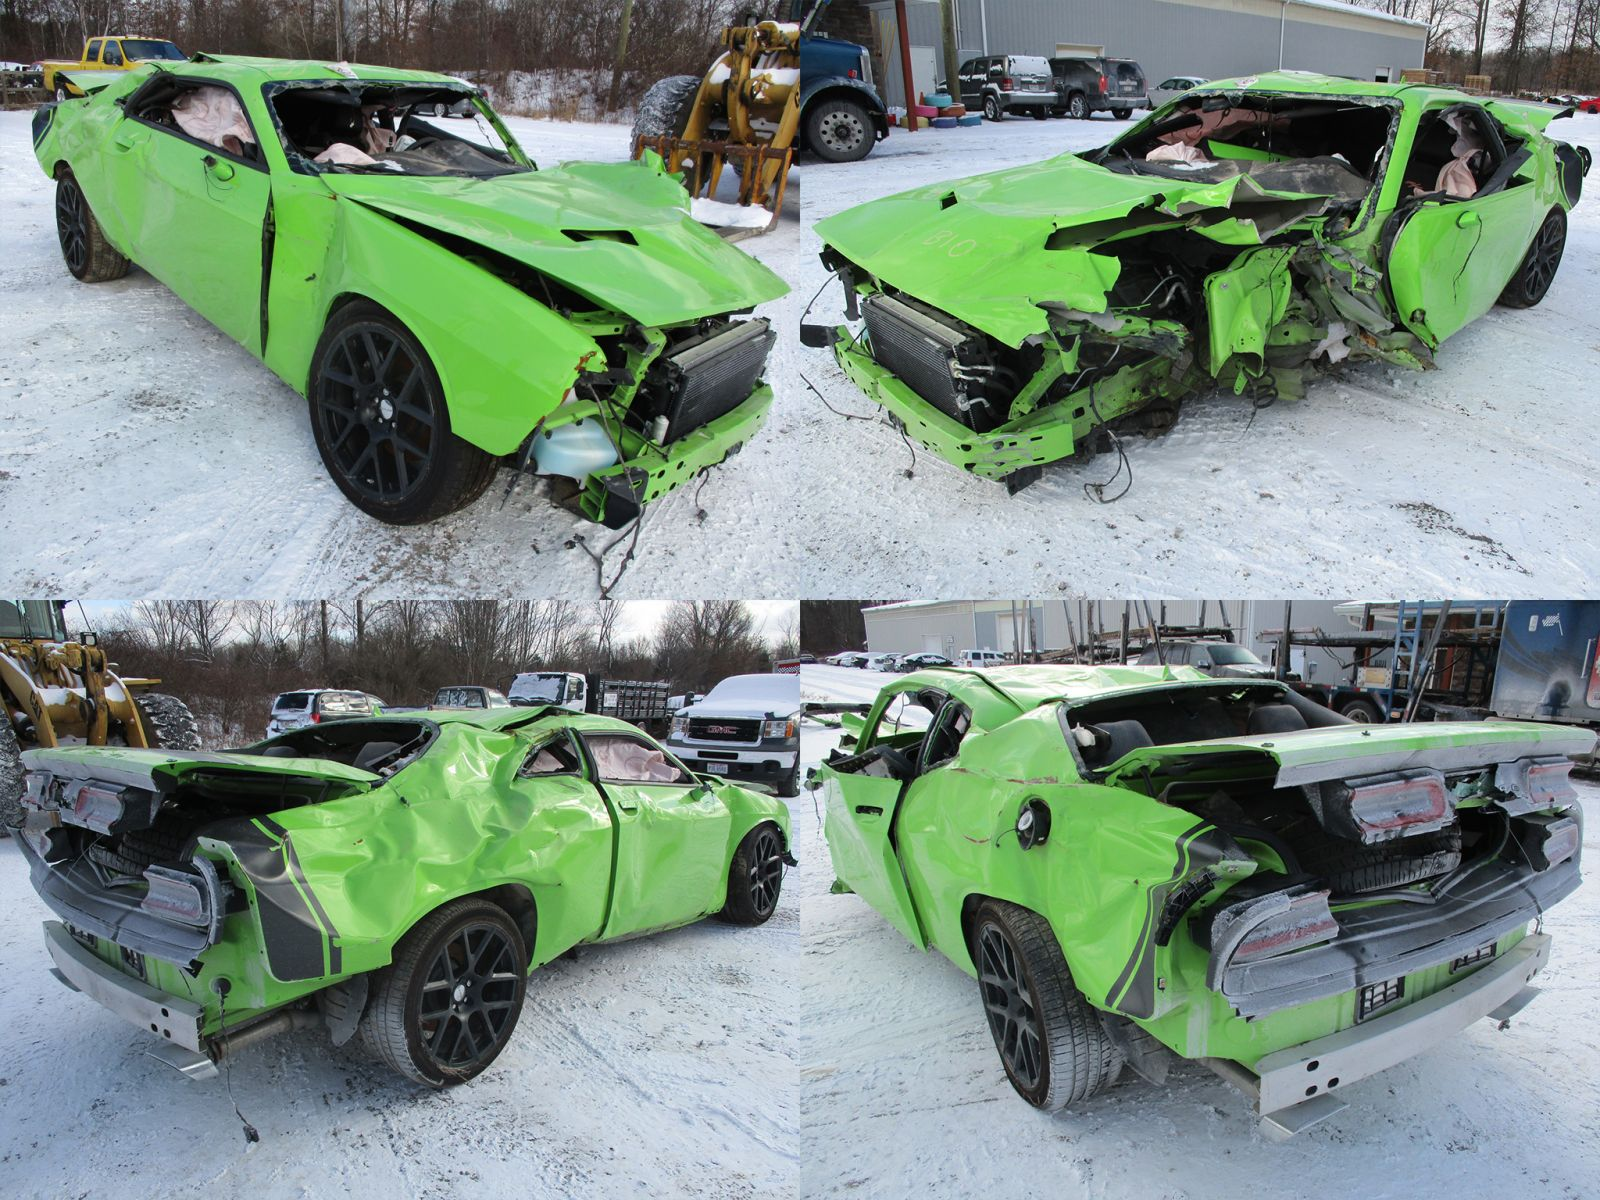 Wrecked Cars For Sale >> 2015 Sublime Green Dodge Challenger R/T Scat Pack 6.4L - Cleveland Power & Performance